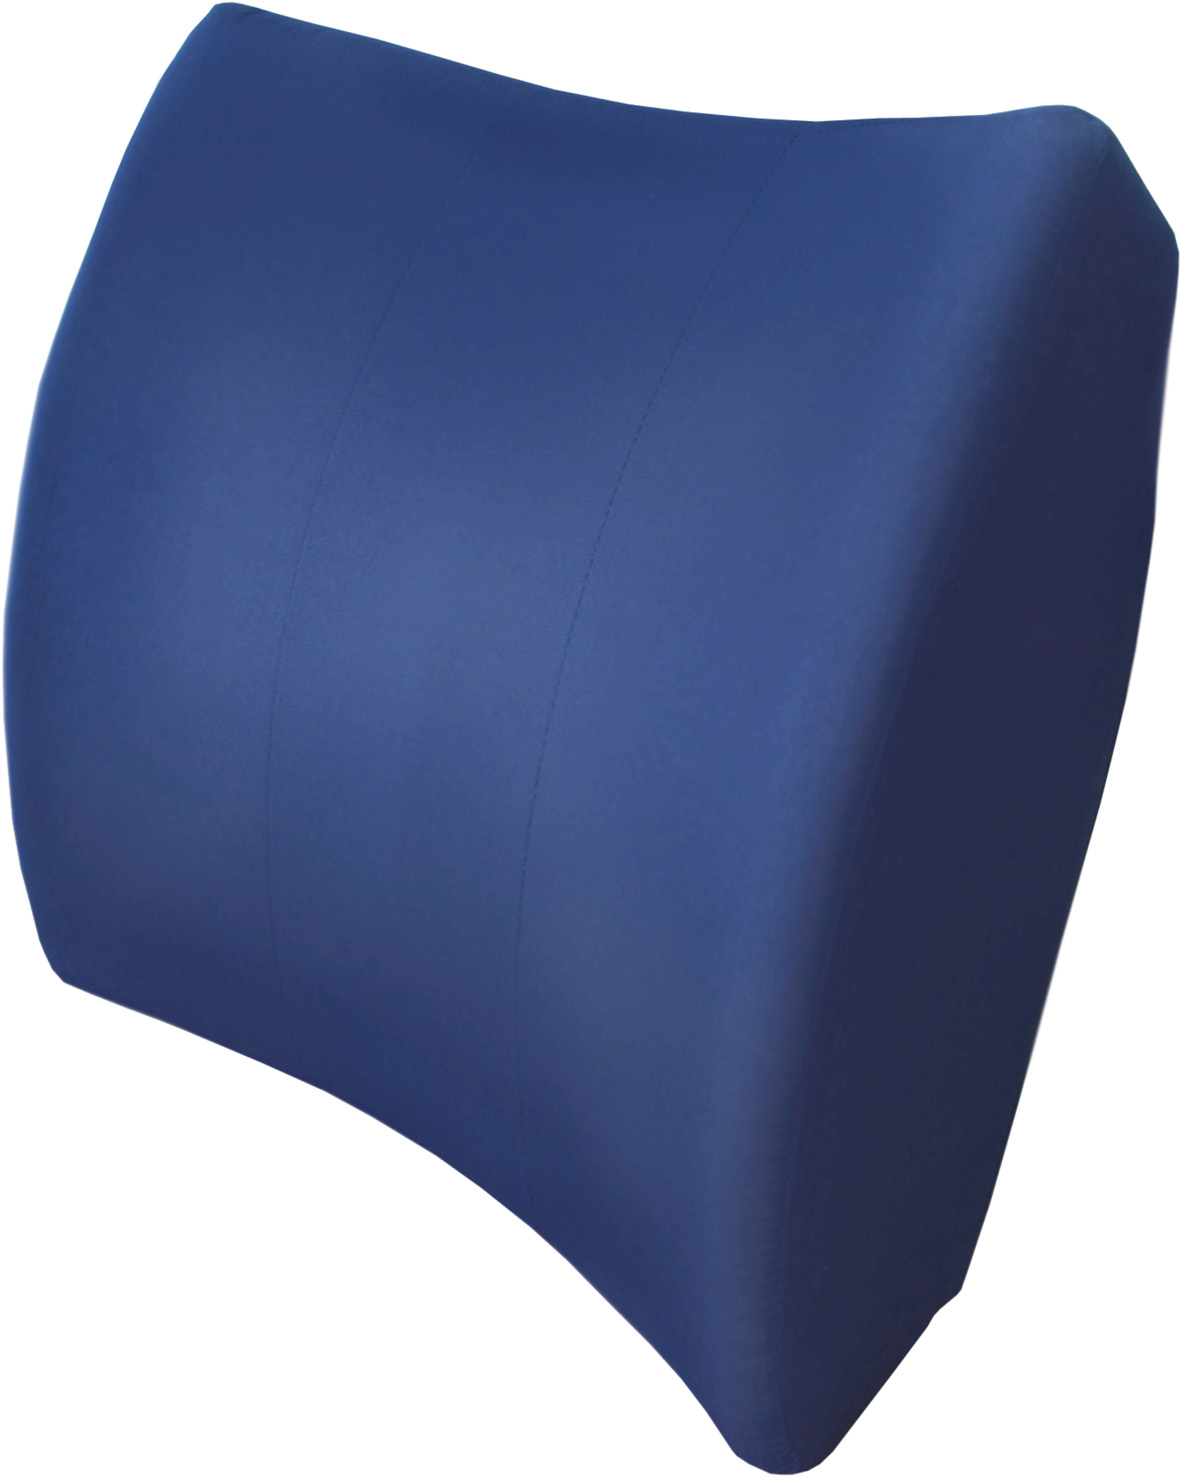 LEDA-SUPPORT CUSHION RANGE L100